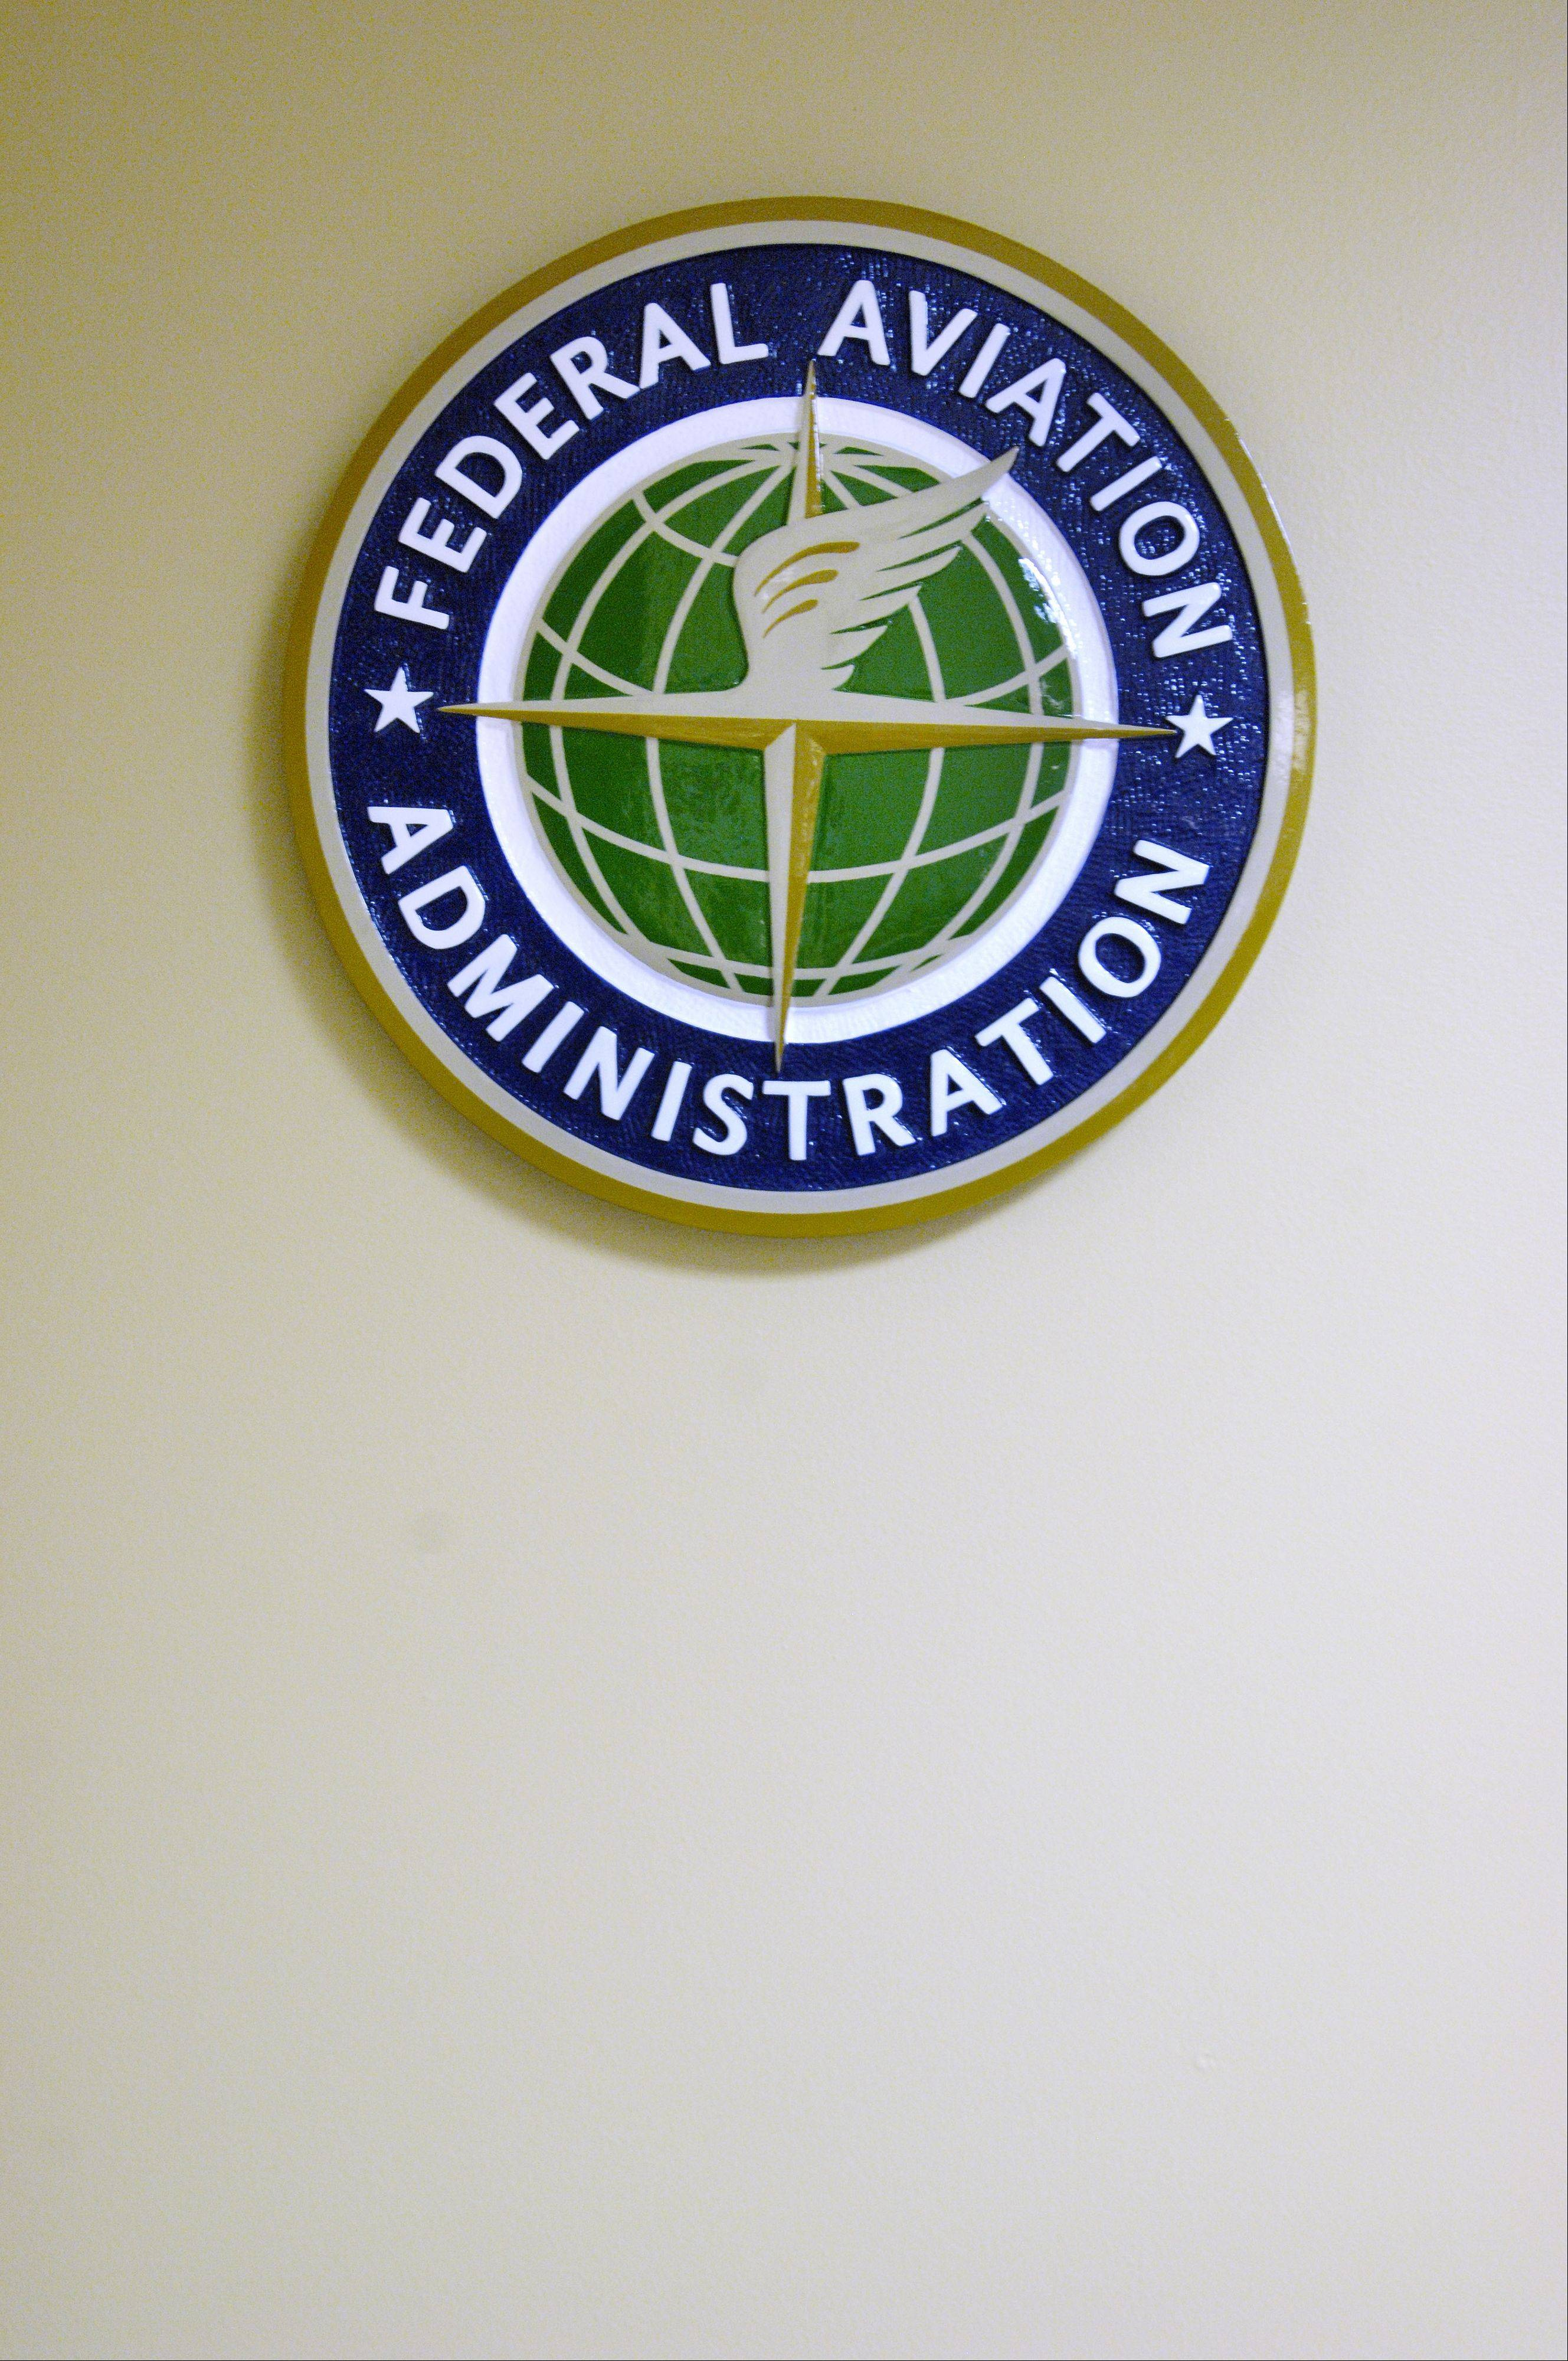 The Federal Aviation Administration emblem in the entryway of the Aurora Chicago Air Route Traffic Control Center.